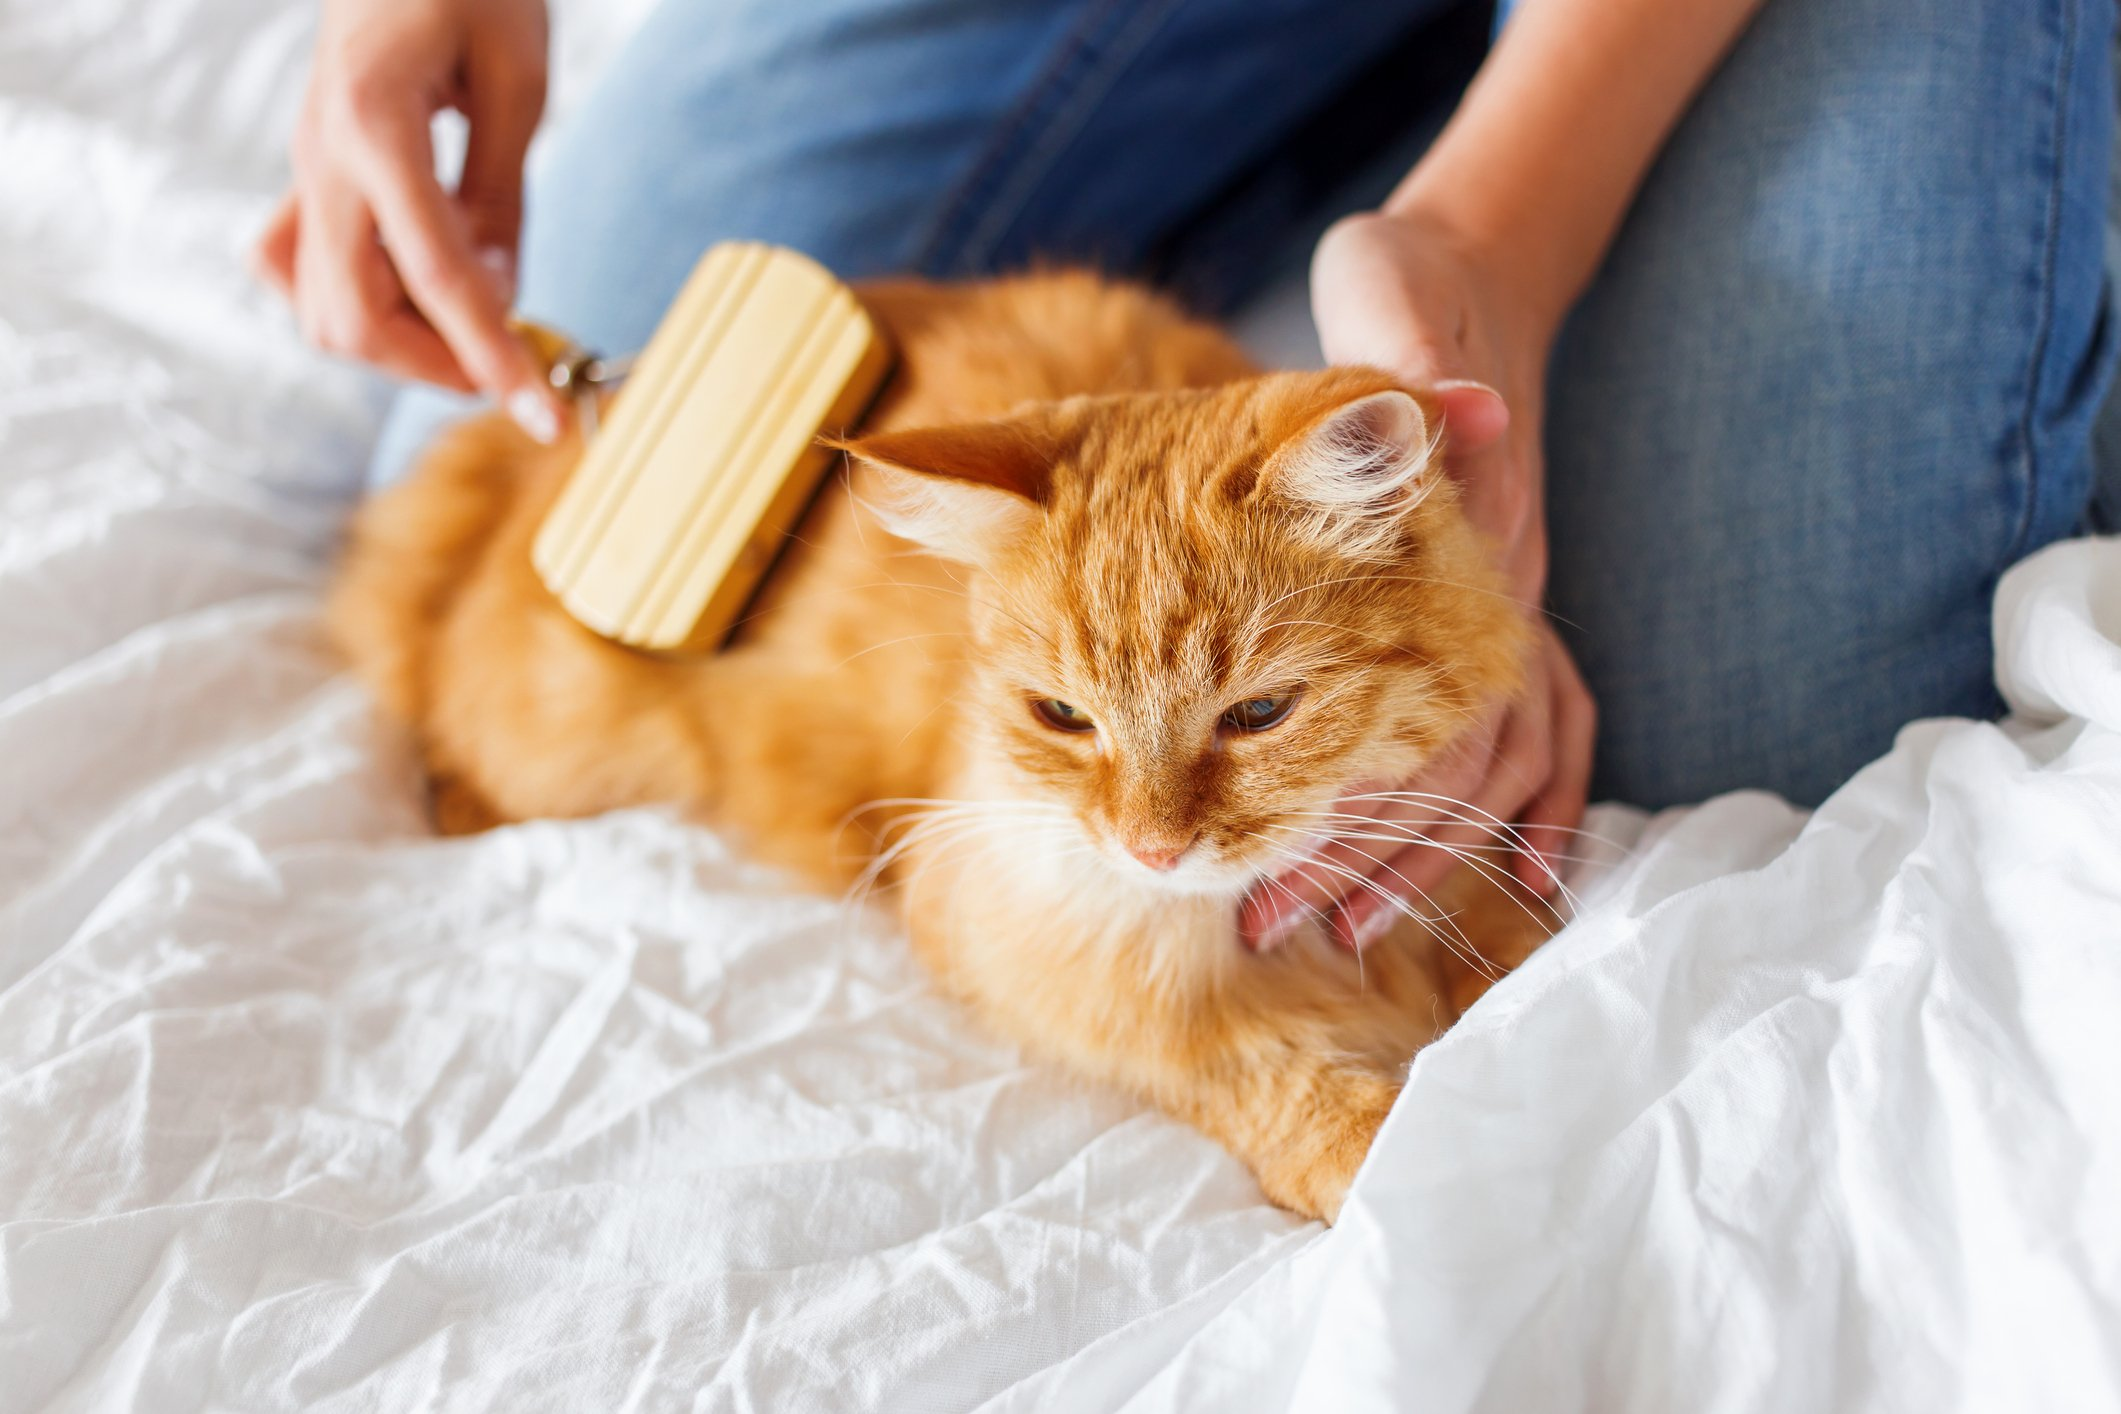 Combing and brushing your pets also helps their fur from getting tangled and matted. (iStock Photo)